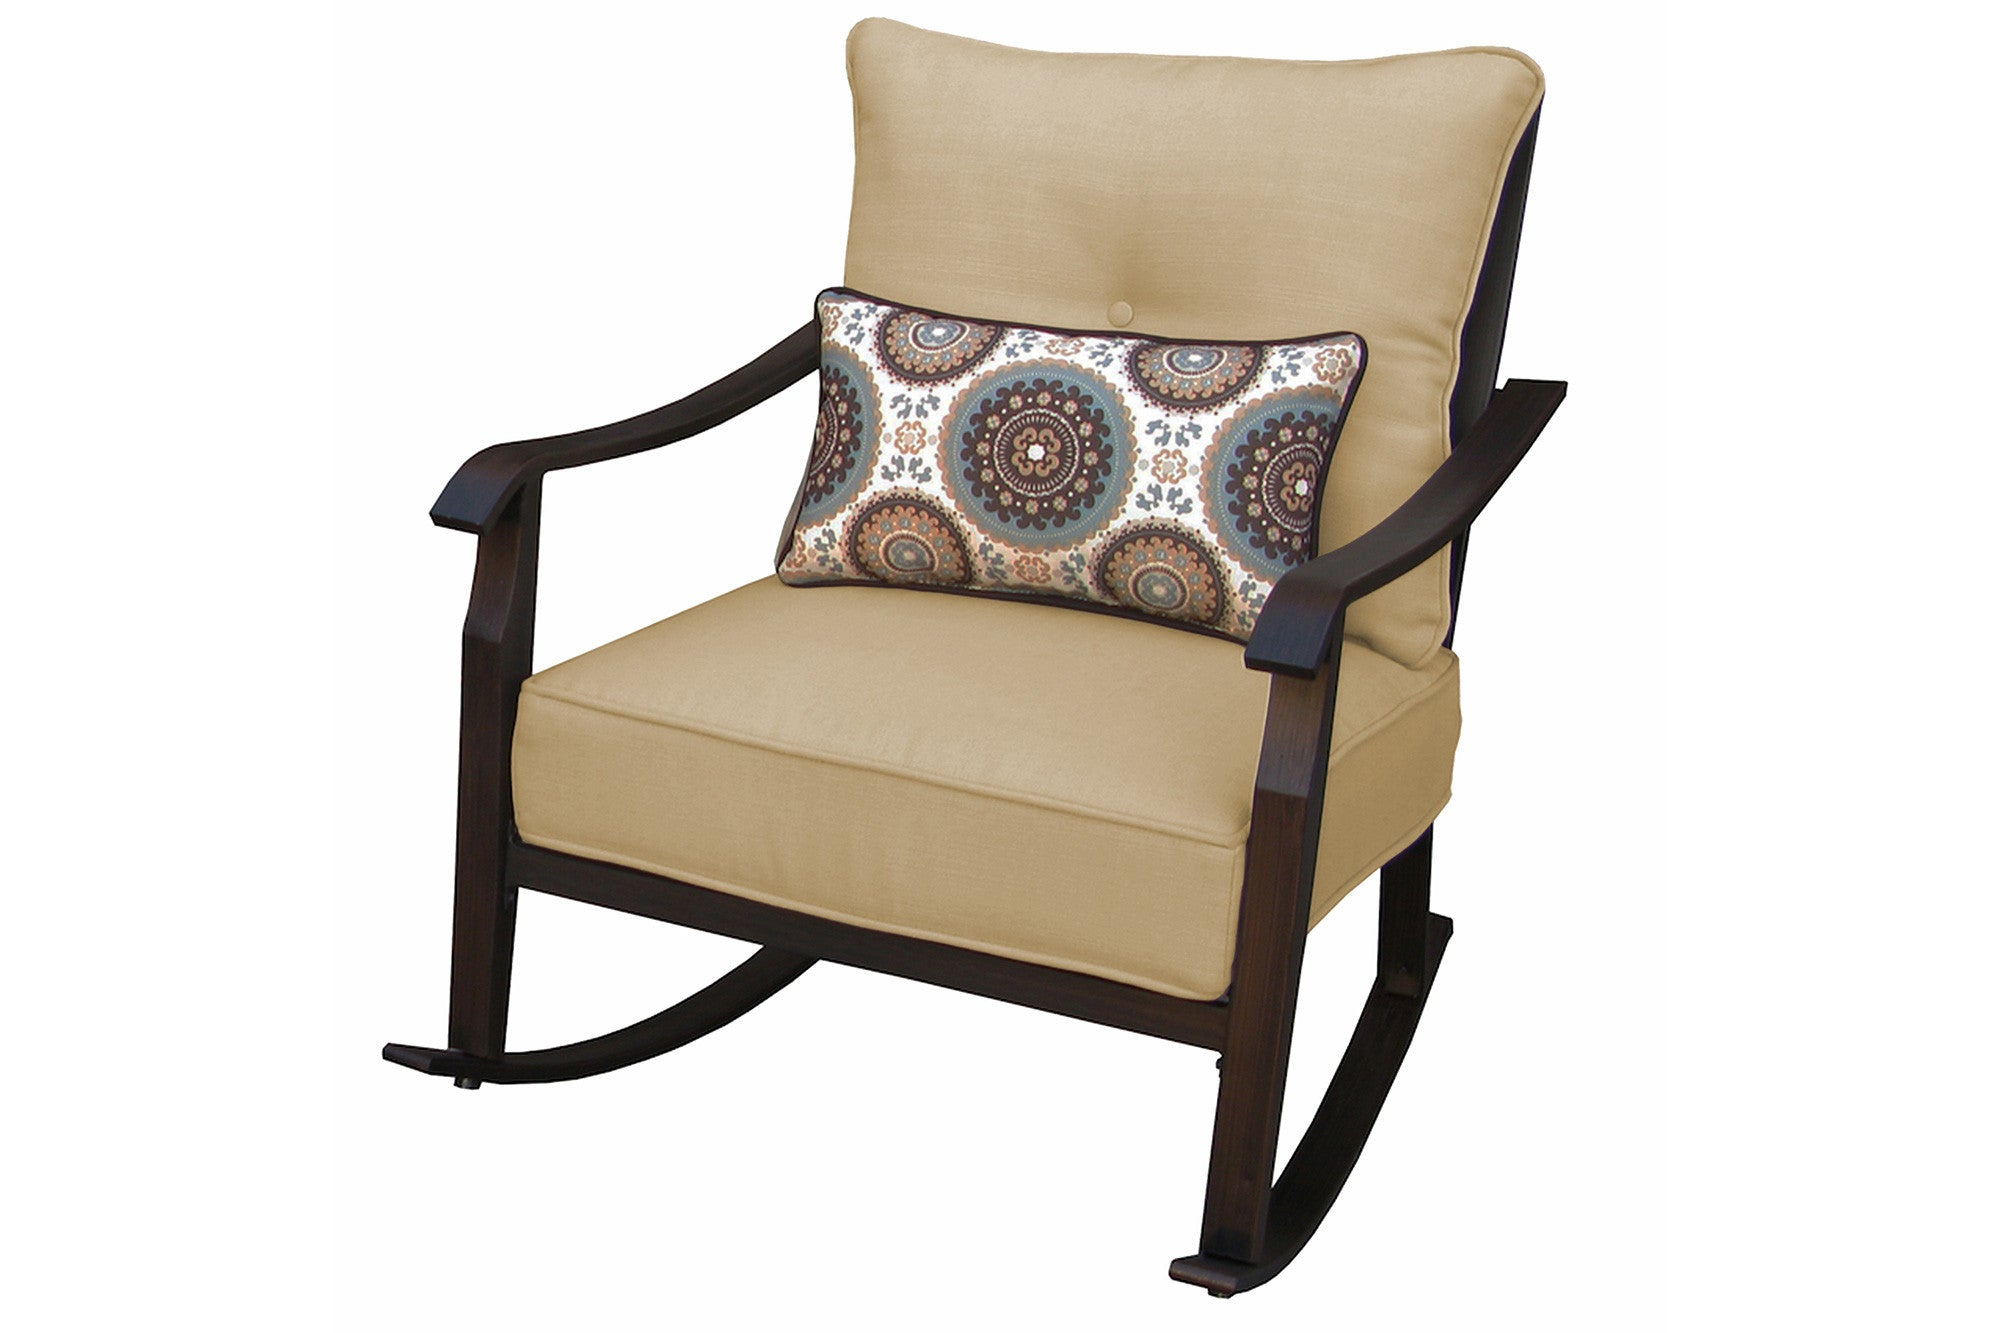 Scottsdale 3pc Rocker Seating Set Patio Furniture Apollo